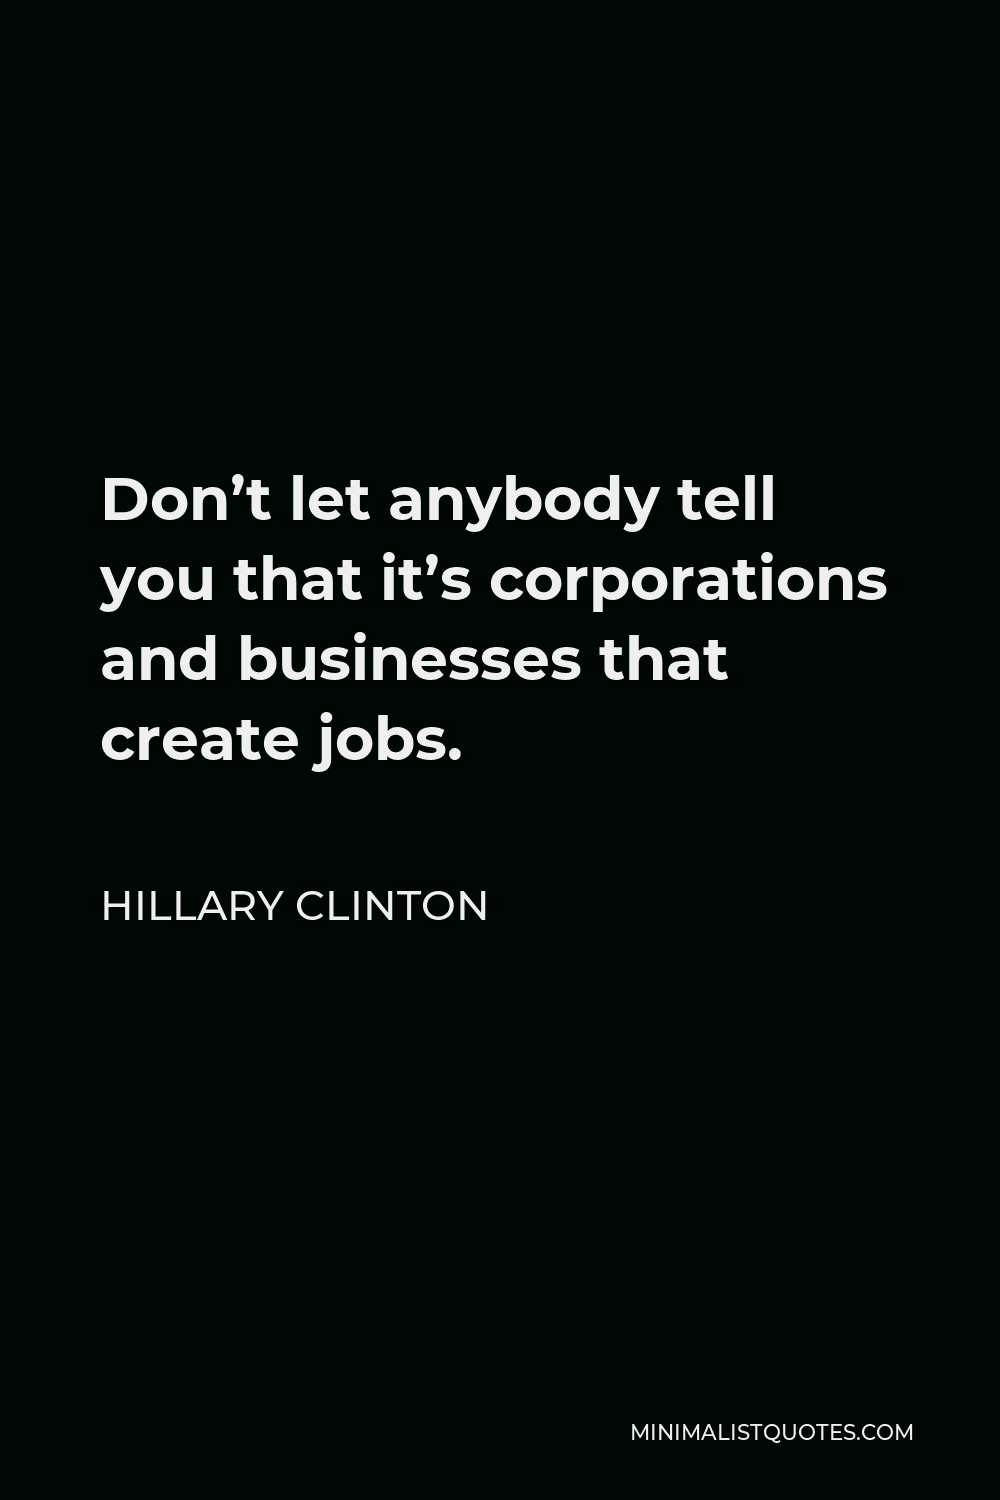 Hillary Clinton Quote - Don't let anybody tell you that it's corporations and businesses that create jobs.